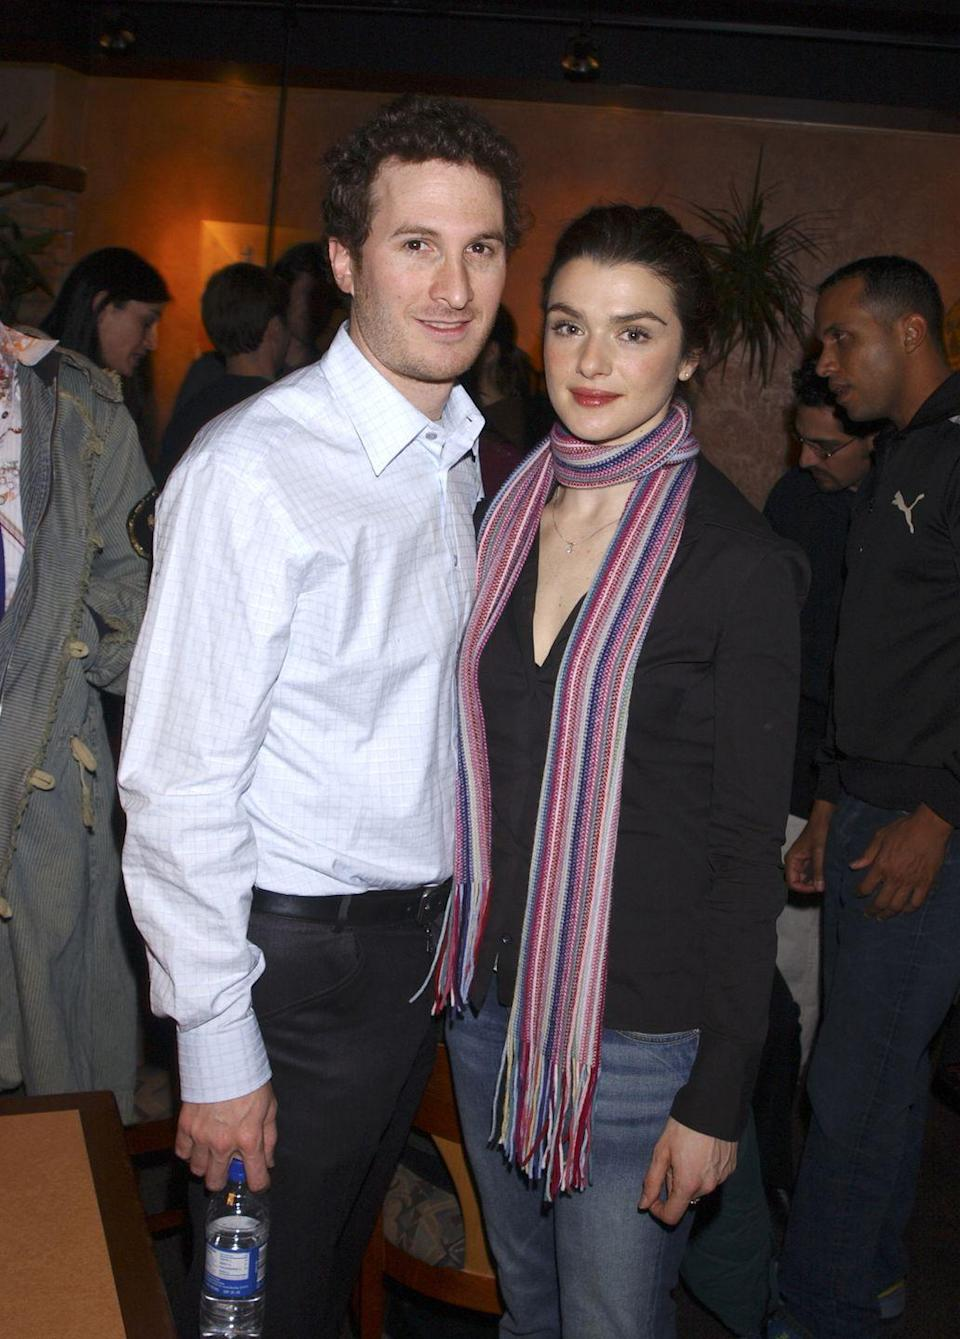 """<p>Weisz and <span class=""""redactor-invisible-space"""">the <em>Black Swan </em><span class=""""redactor-invisible-space"""">director dated for nine years and had a son together before <a href=""""http://people.com/celebrity/rachel-weisz-darren-aronofsky-split/"""" rel=""""nofollow noopener"""" target=""""_blank"""" data-ylk=""""slk:ending their engagement"""" class=""""link rapid-noclick-resp"""">ending their engagement</a> in November 2010. </span></span></p>"""